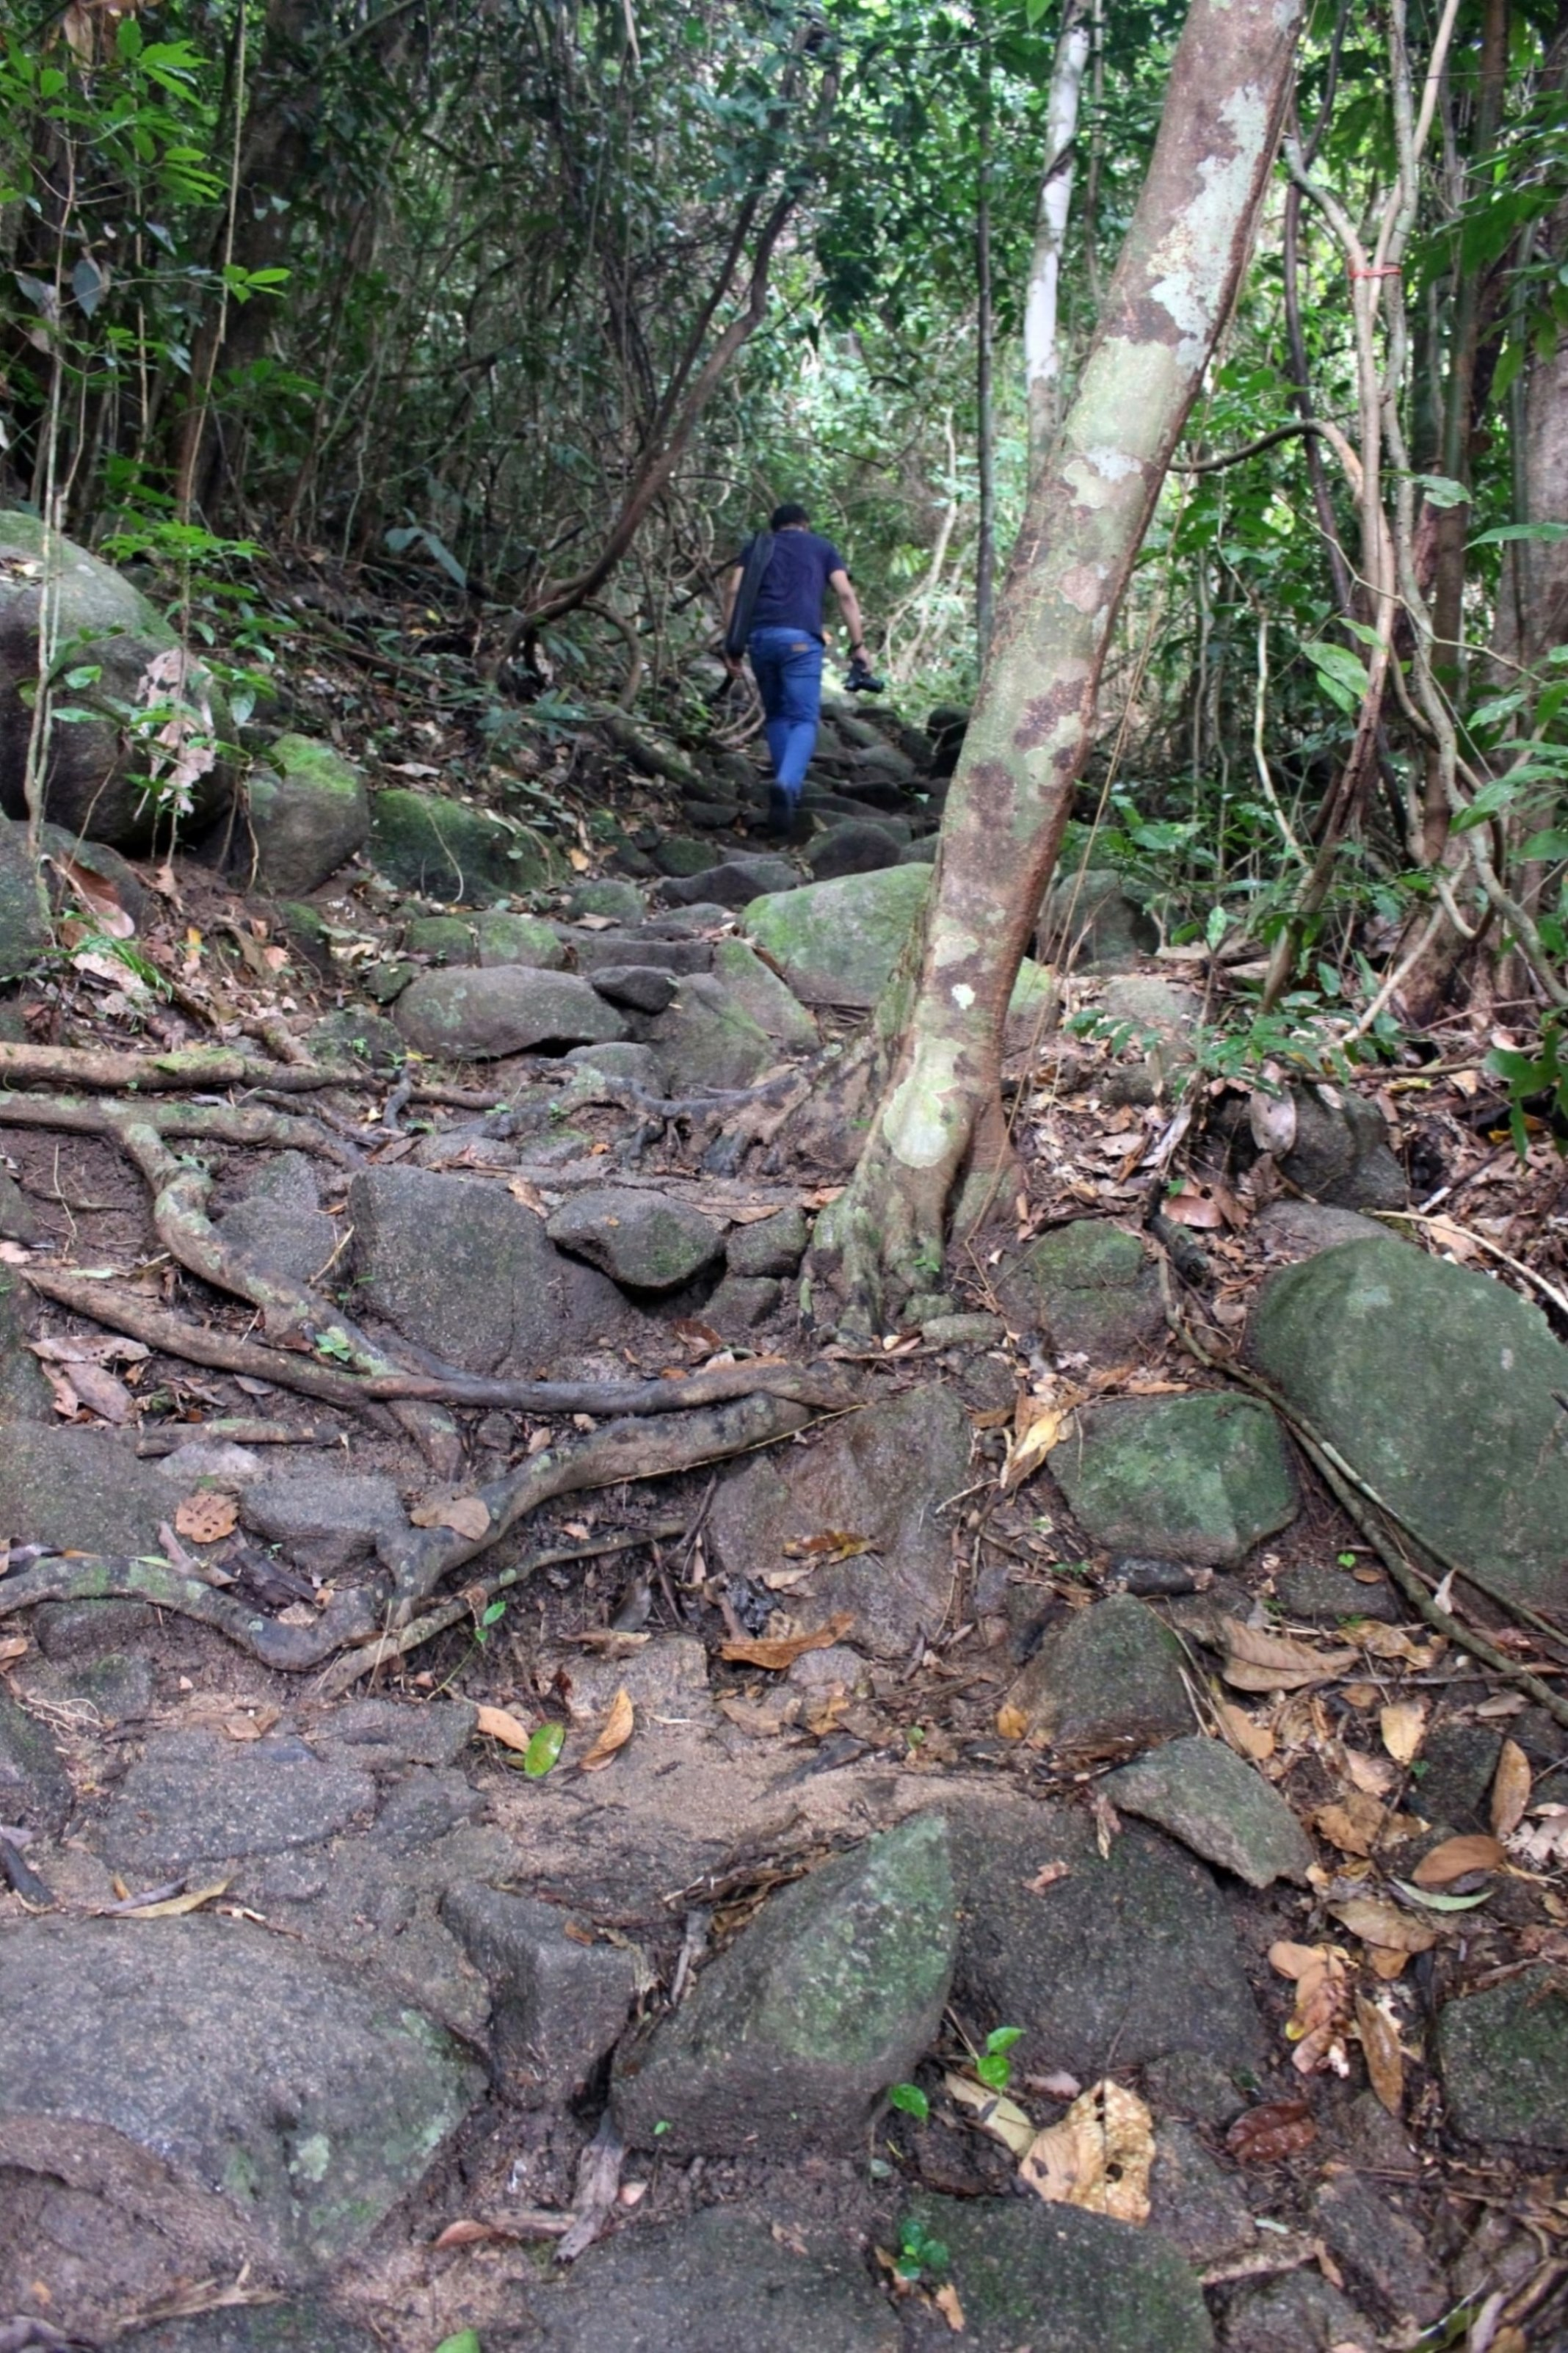 Man hikes up a mountain forest path, Rainforest, Way, Walk, Tropical, HQ Photo